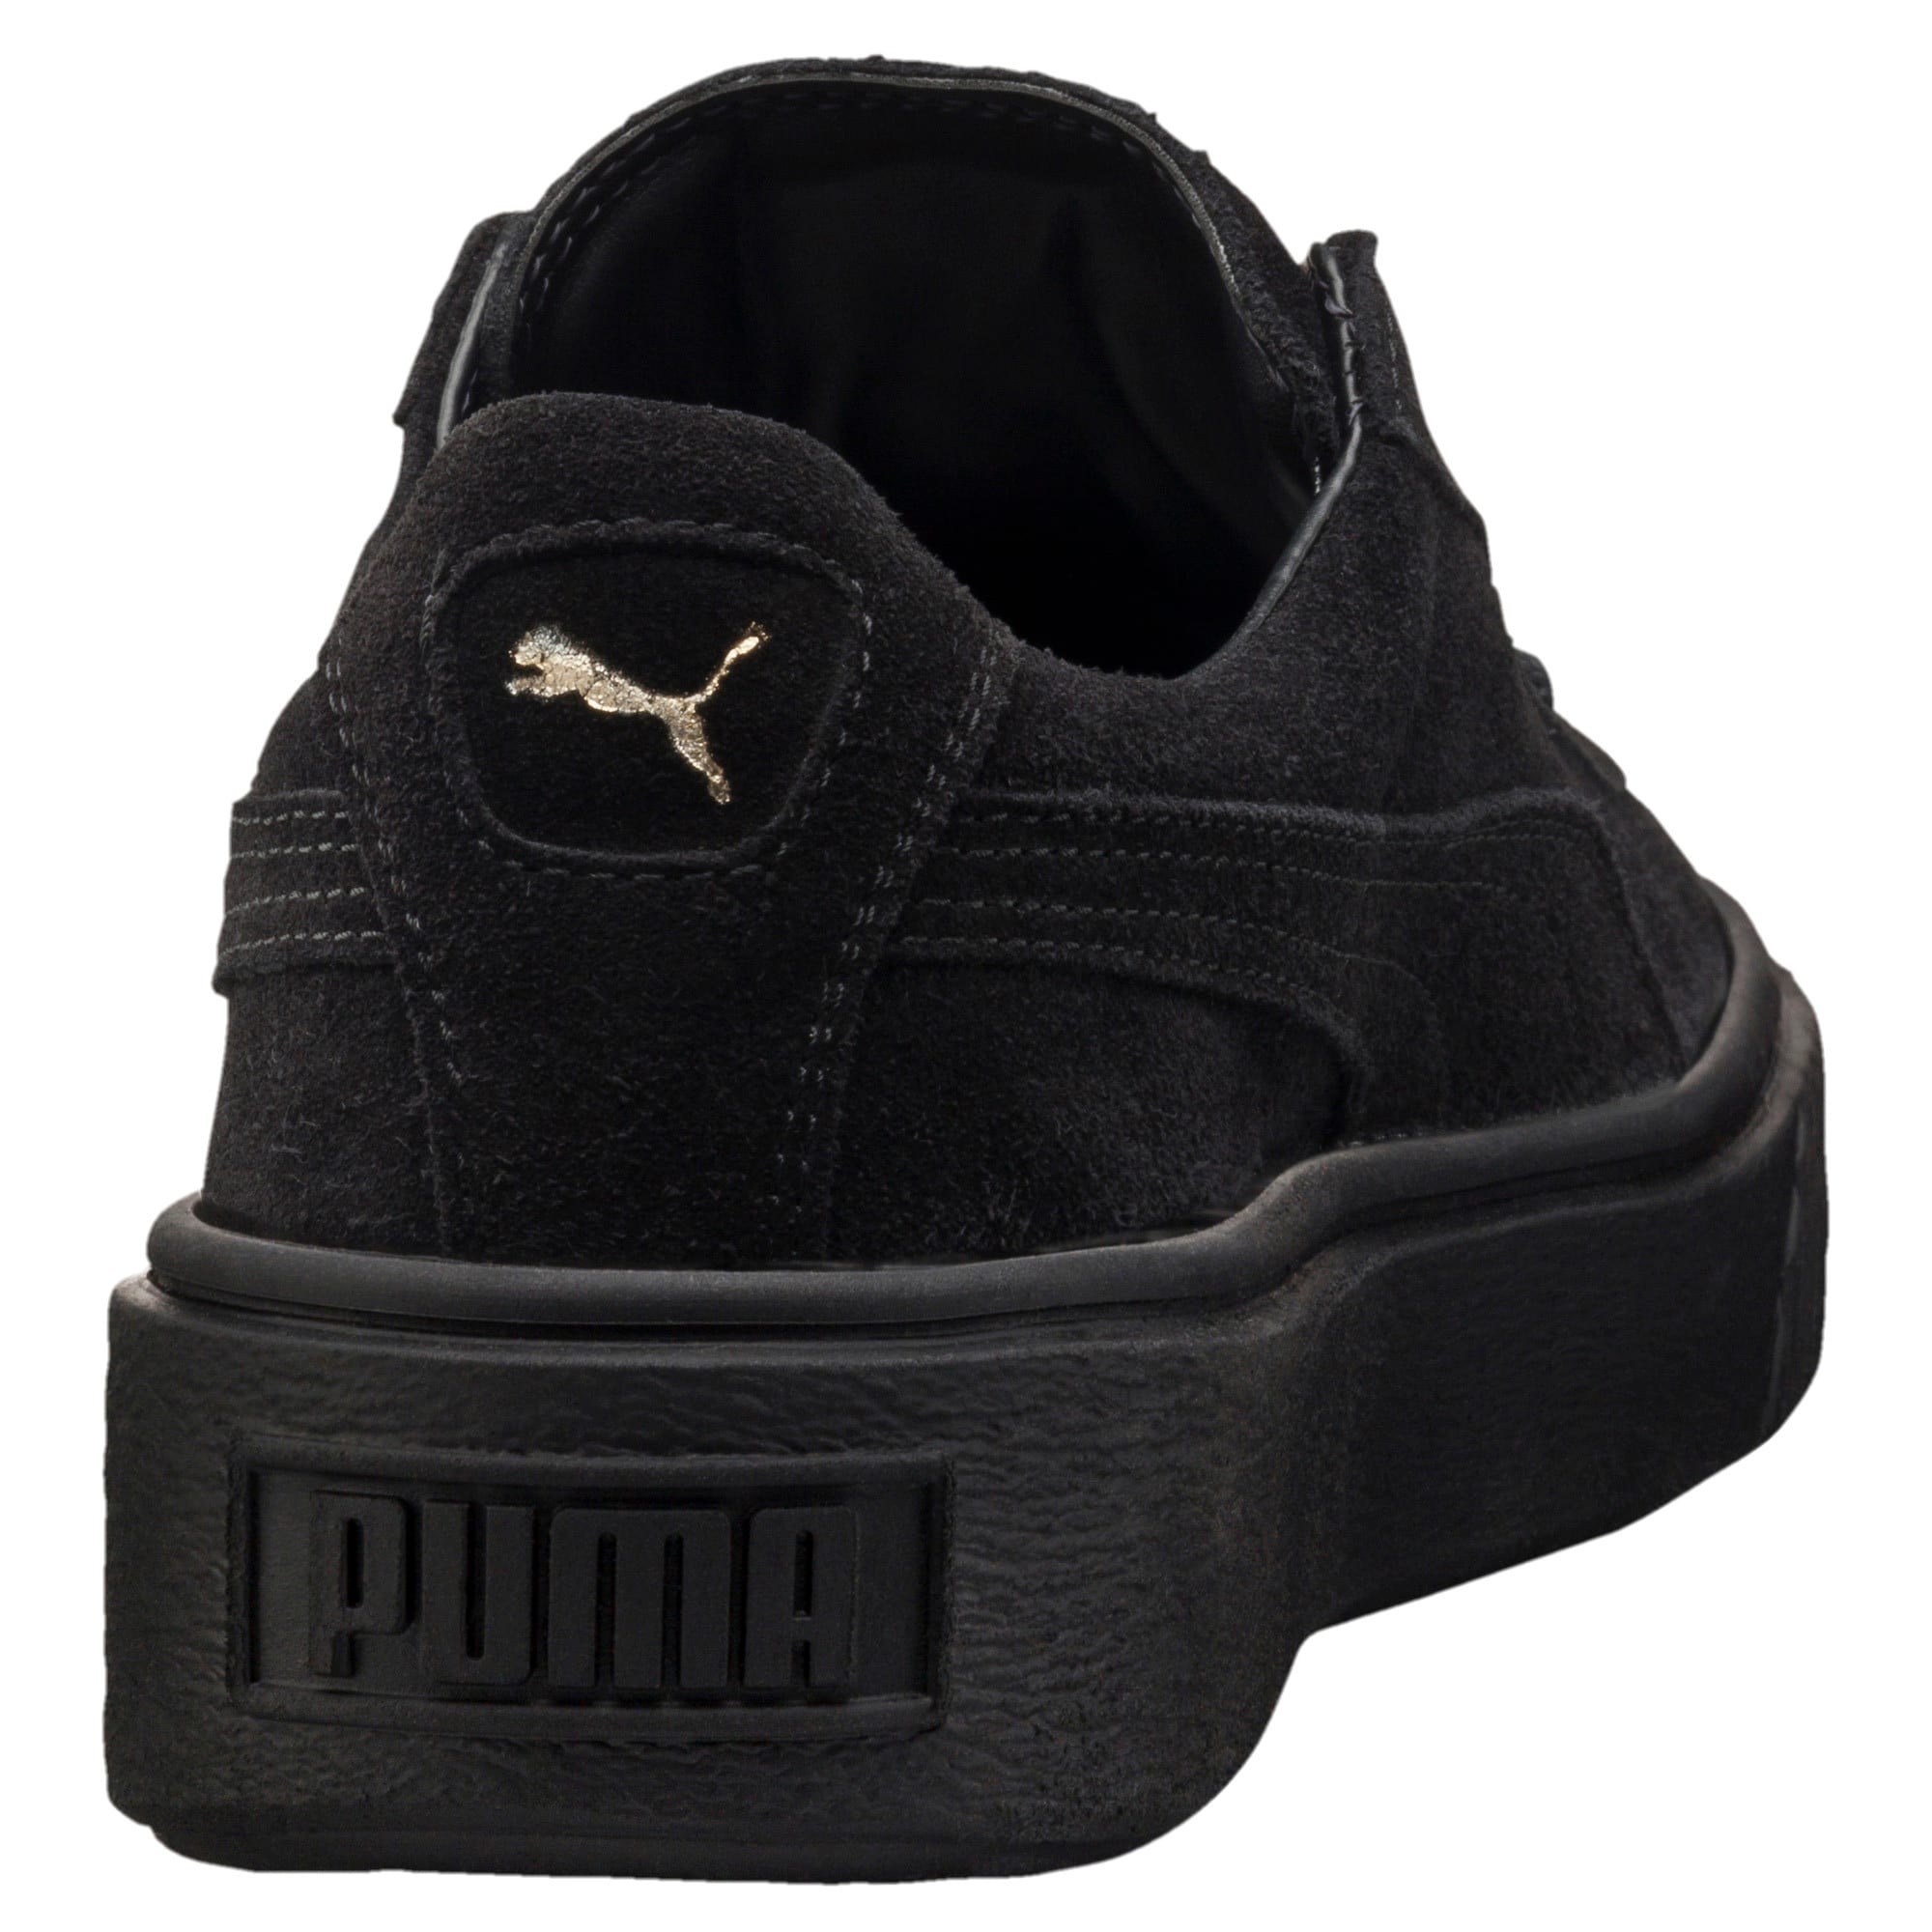 Thumbnail 3 of Suede Platform GOLD Women's Trainers, Gold-Puma Black-Puma Black, medium-IND